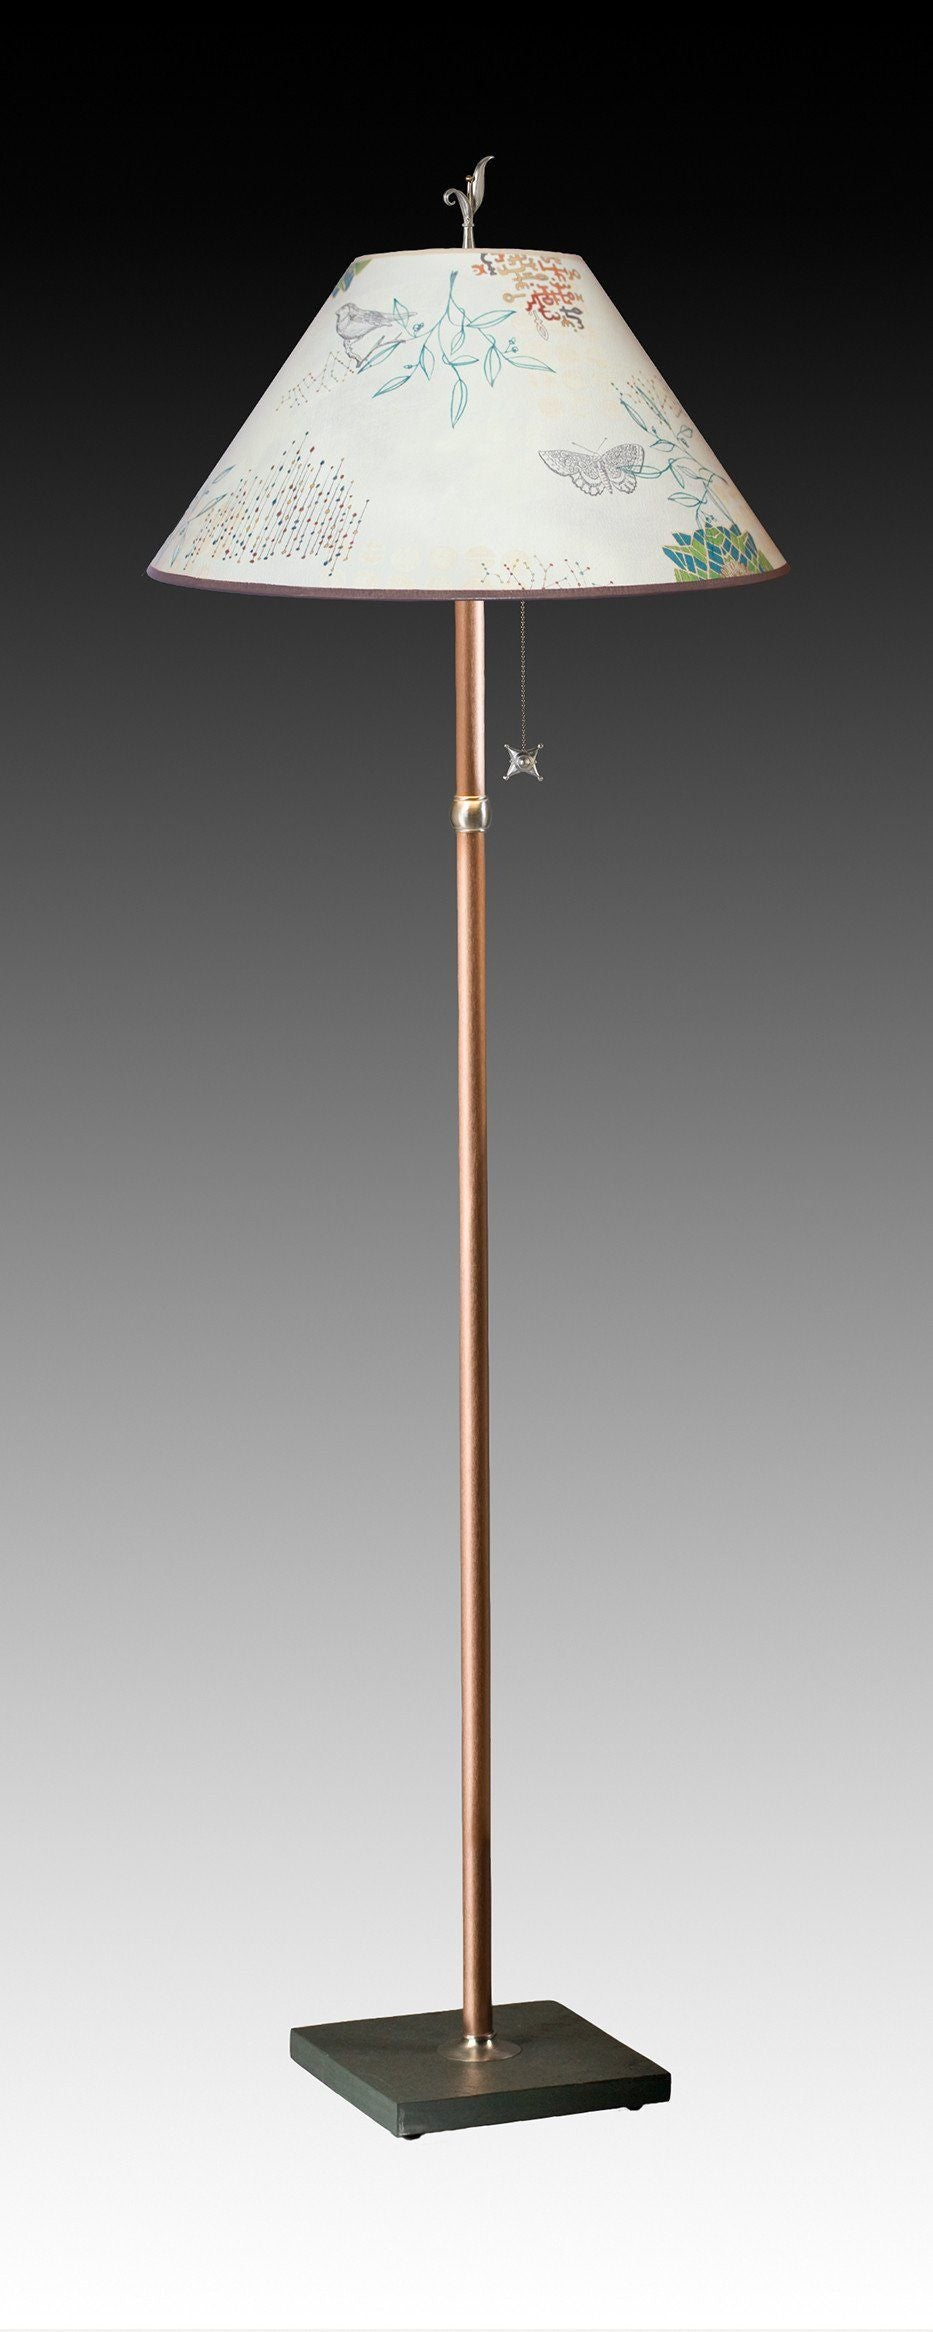 Copper Floor Lamp on Vermont Slate Base with Large Conical Shade in Ecru Journey